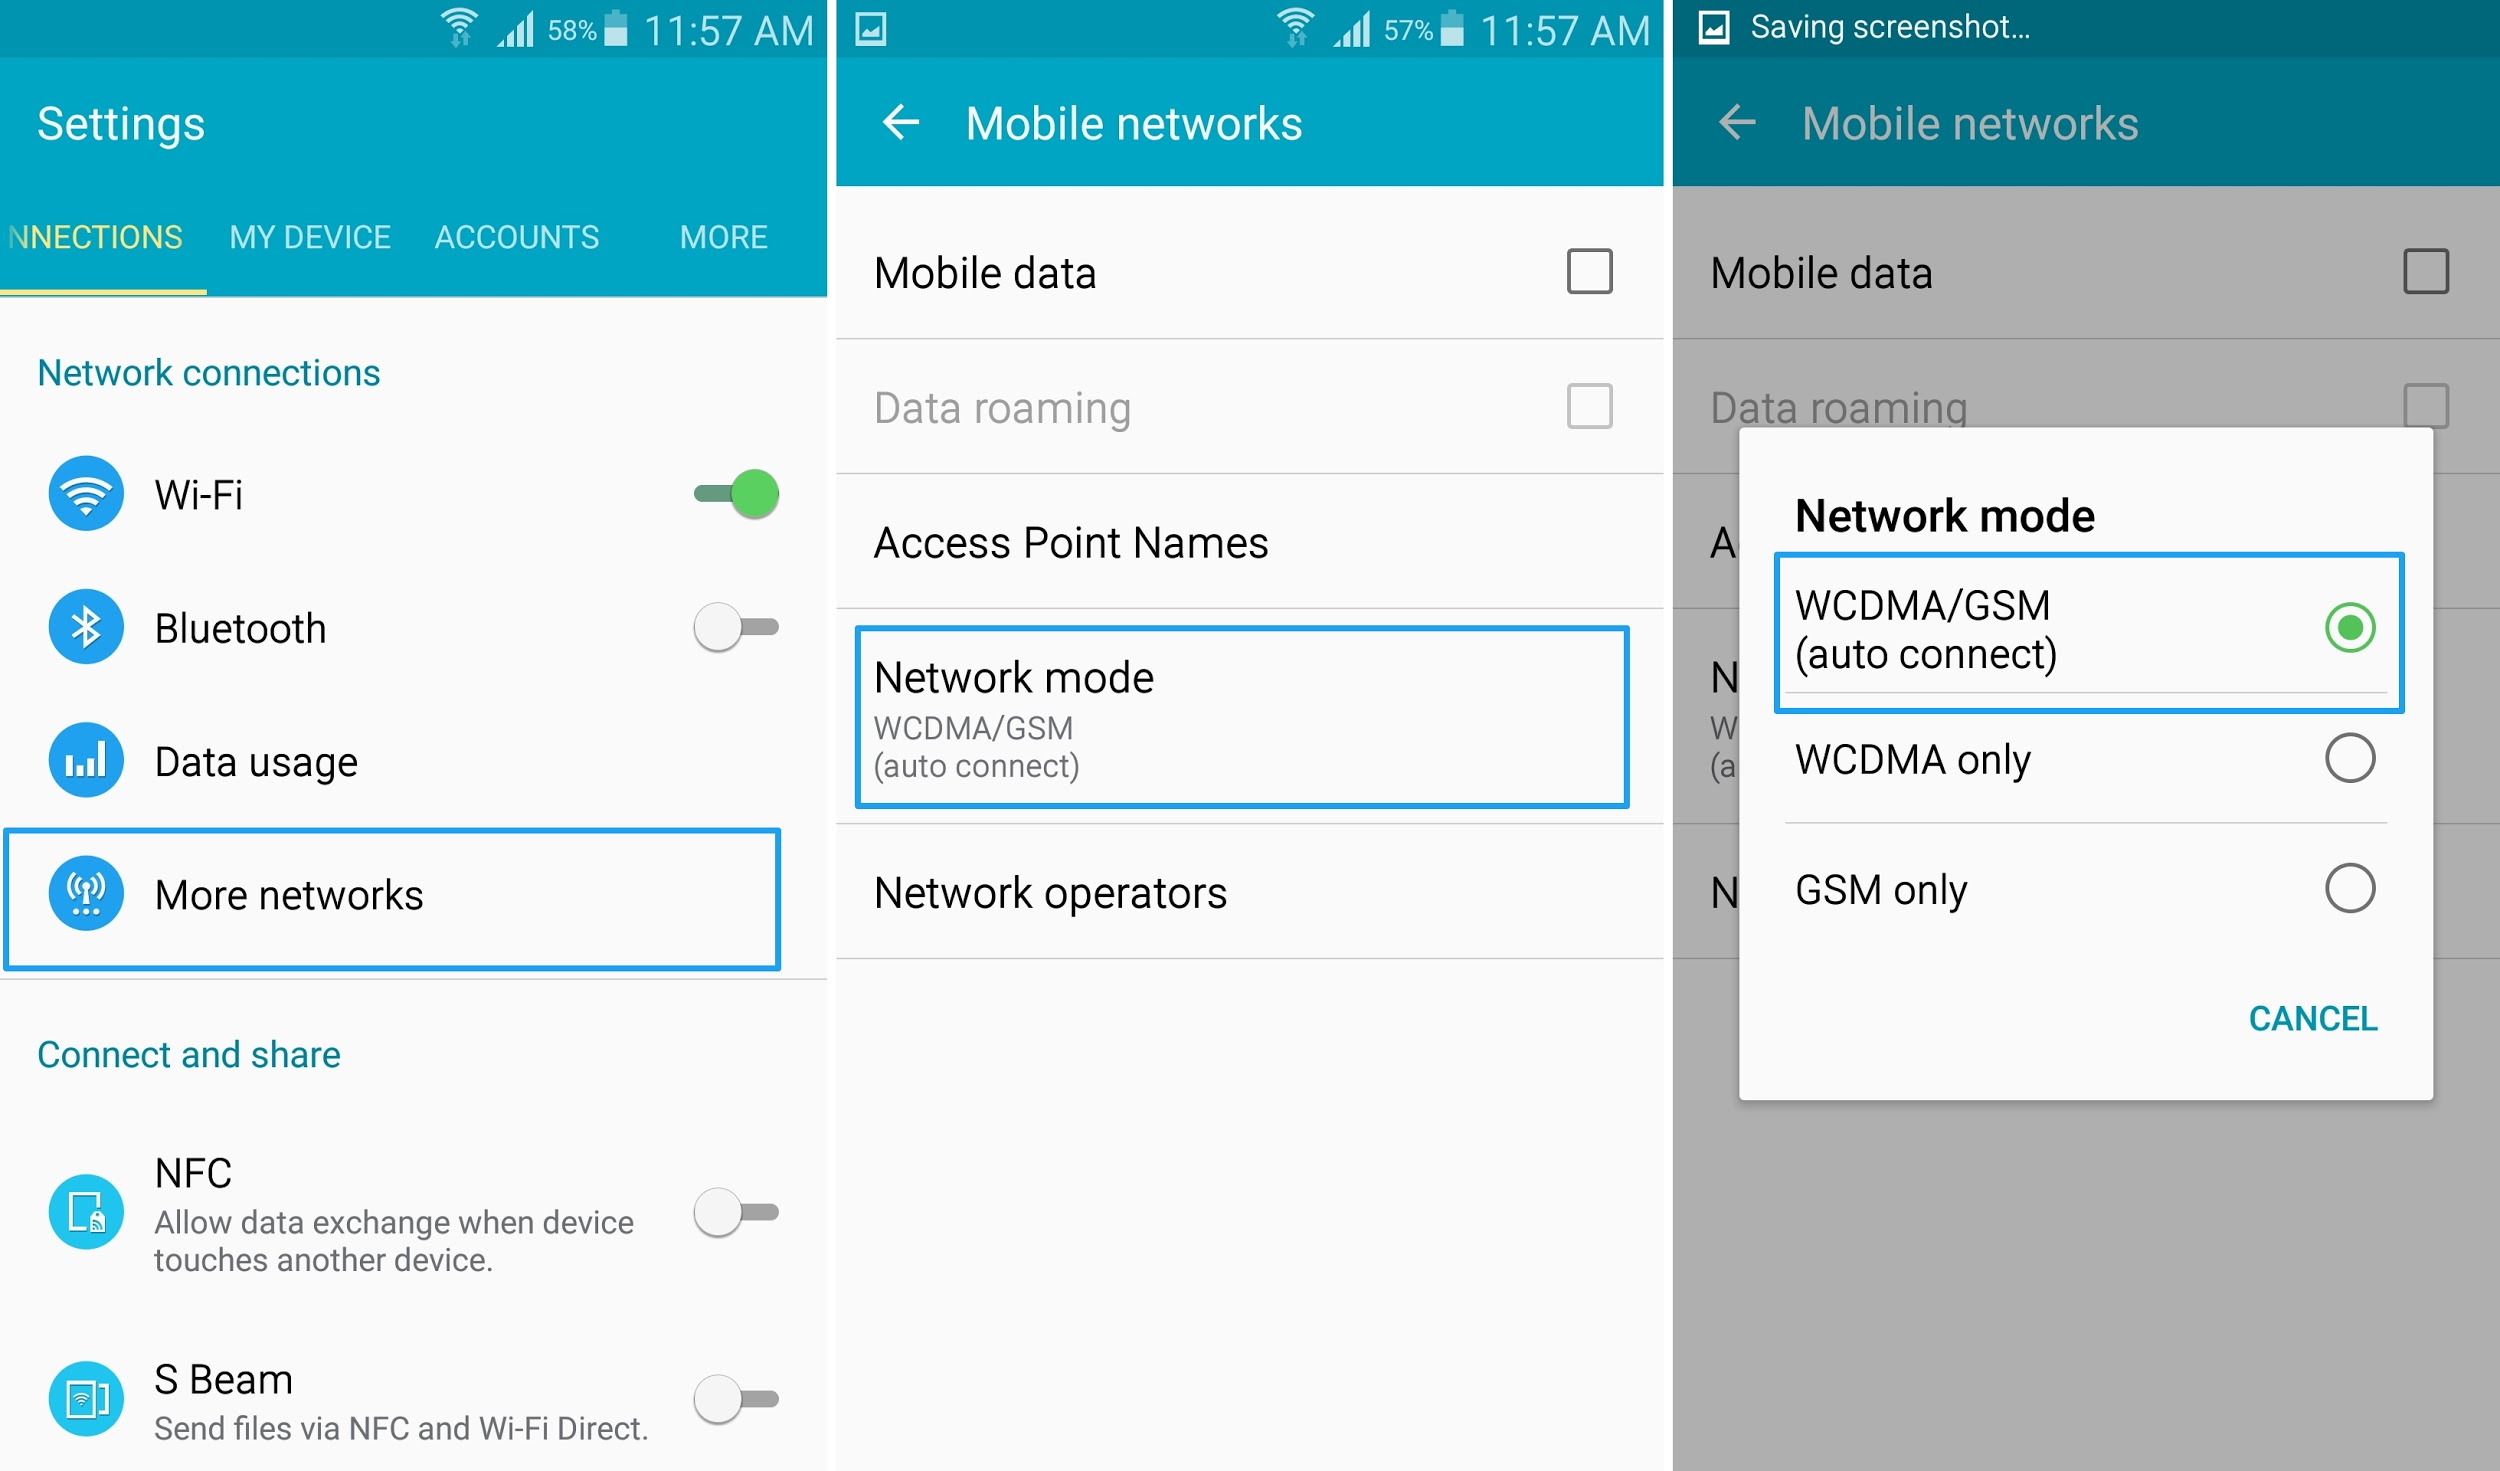 Set Network Mode to Auto on S4